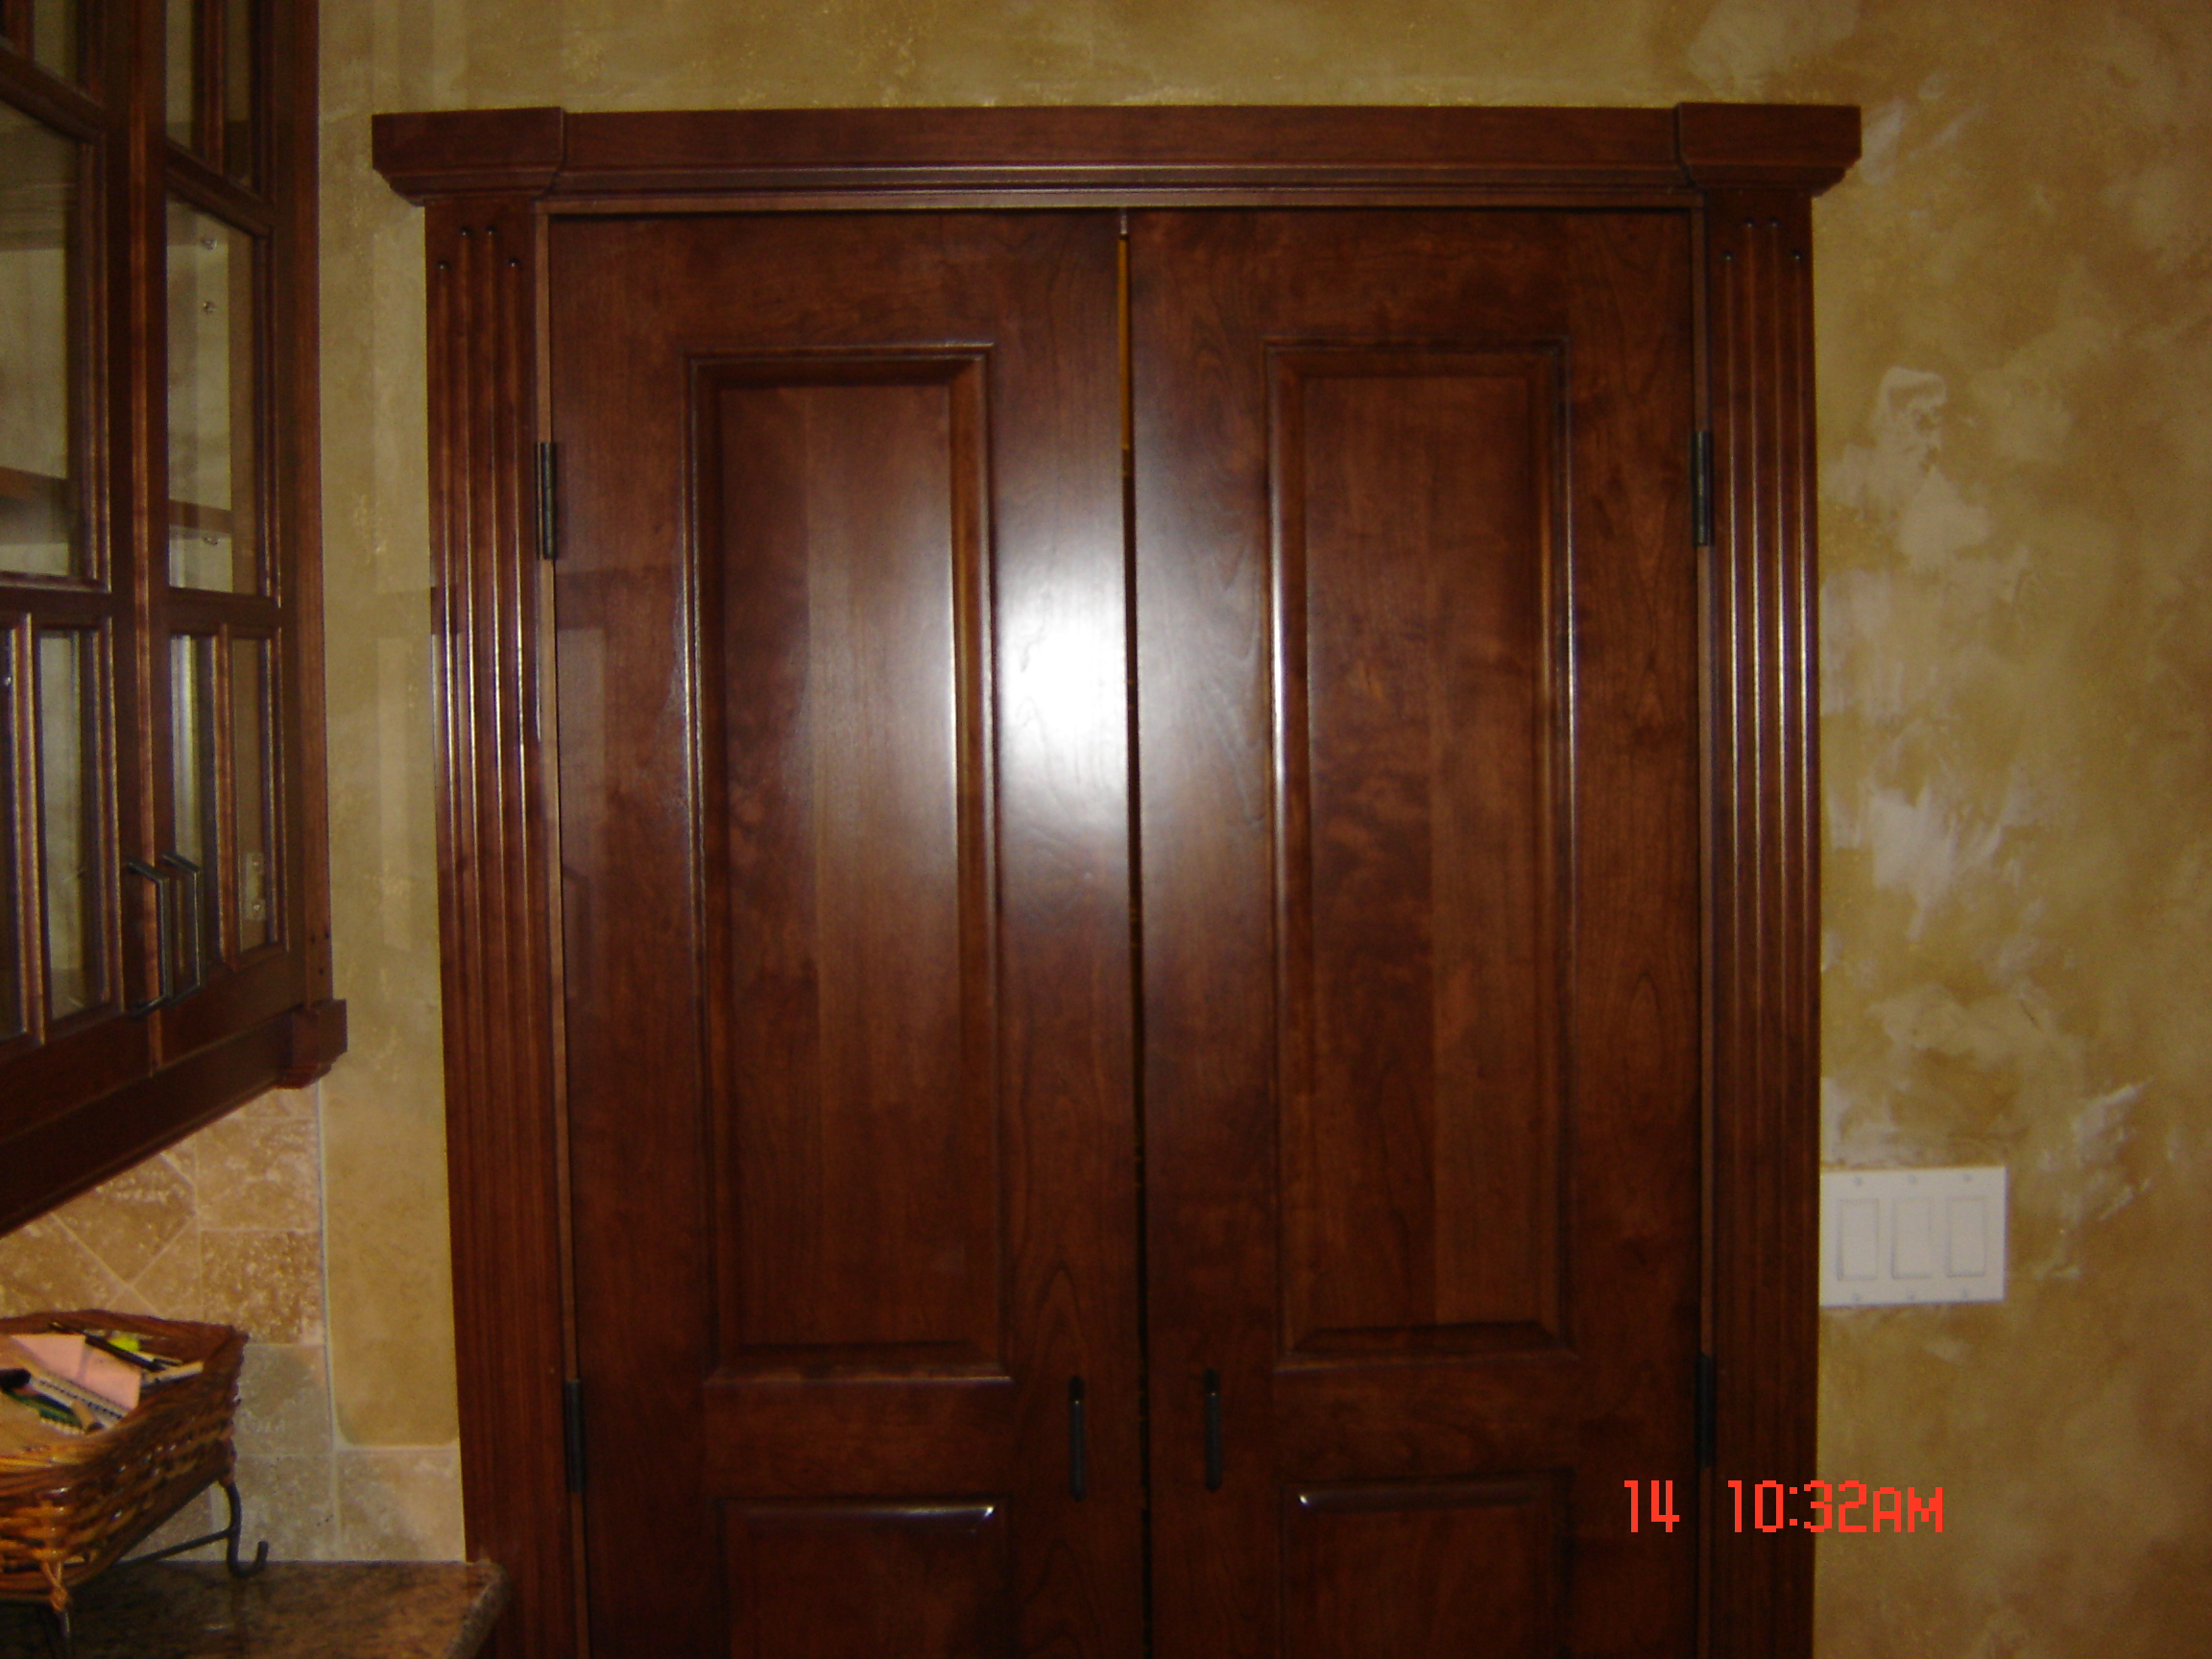 Doors custom woodwork cabinetry by michael bugenske cherry interior doors built to match cabinetry eventelaan Gallery